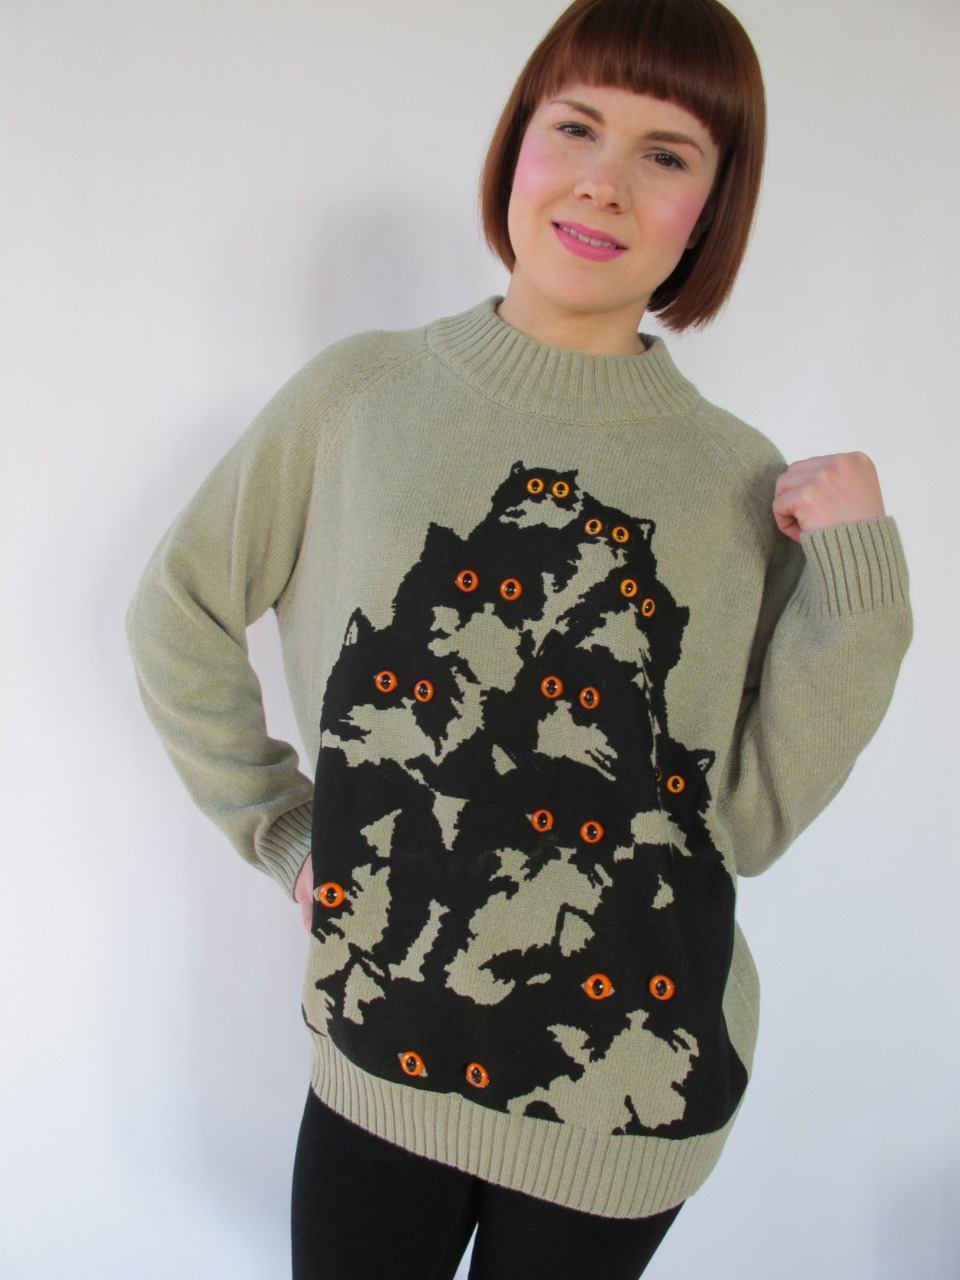 super nice sage green cotton sweater with neon orange kitty eyes! meow! http://www.etsy.com/shop/PrettySnake